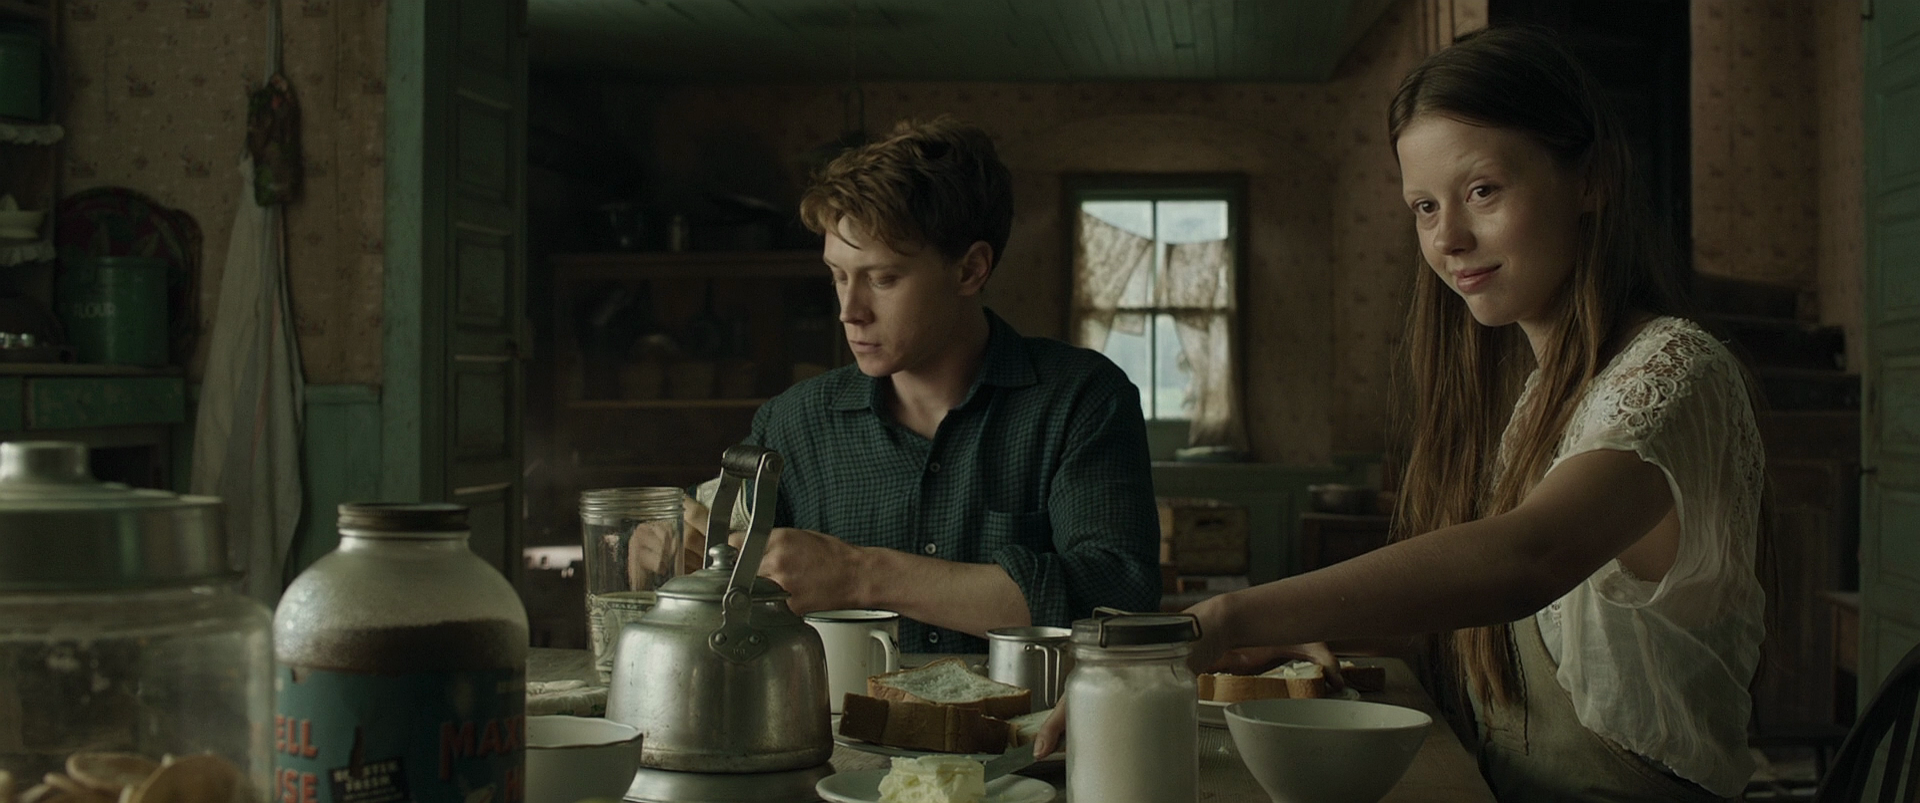 Обитель теней / Marrowbone (2017) BDRip 1080 | iTunes